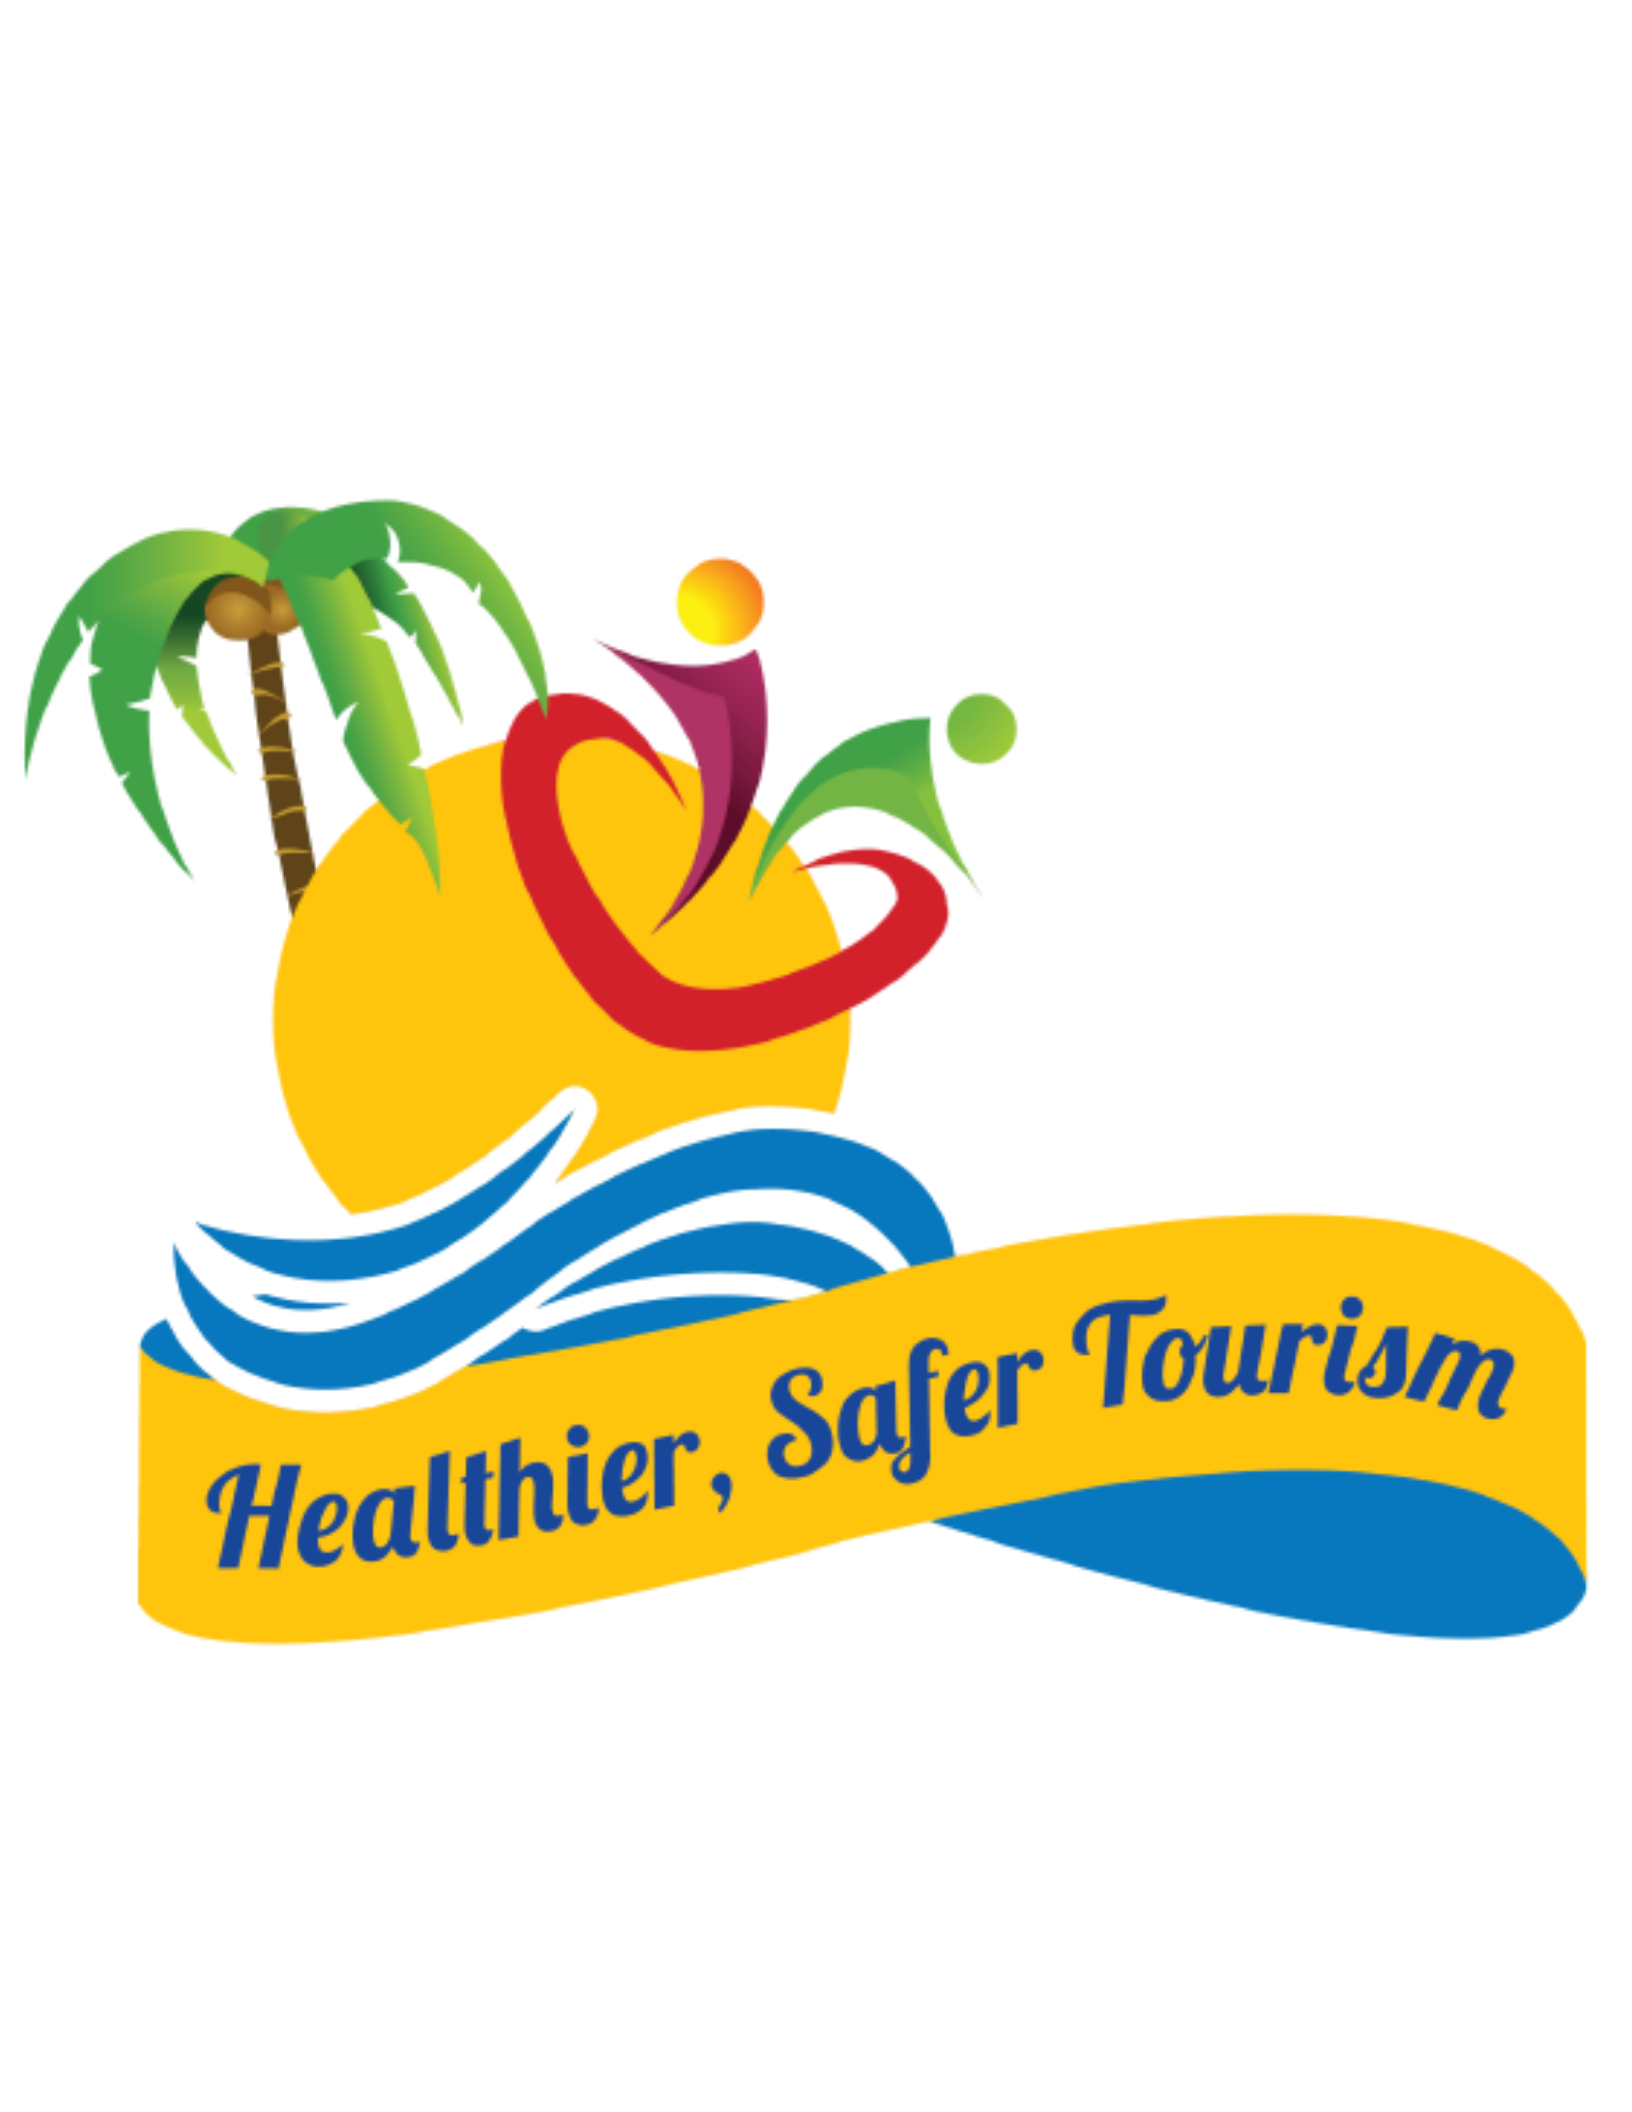 Caribbean Public Health Agency unites with Tourism to Launch Unique Health Assurance Stamp and Mobile App to Protect Tourism